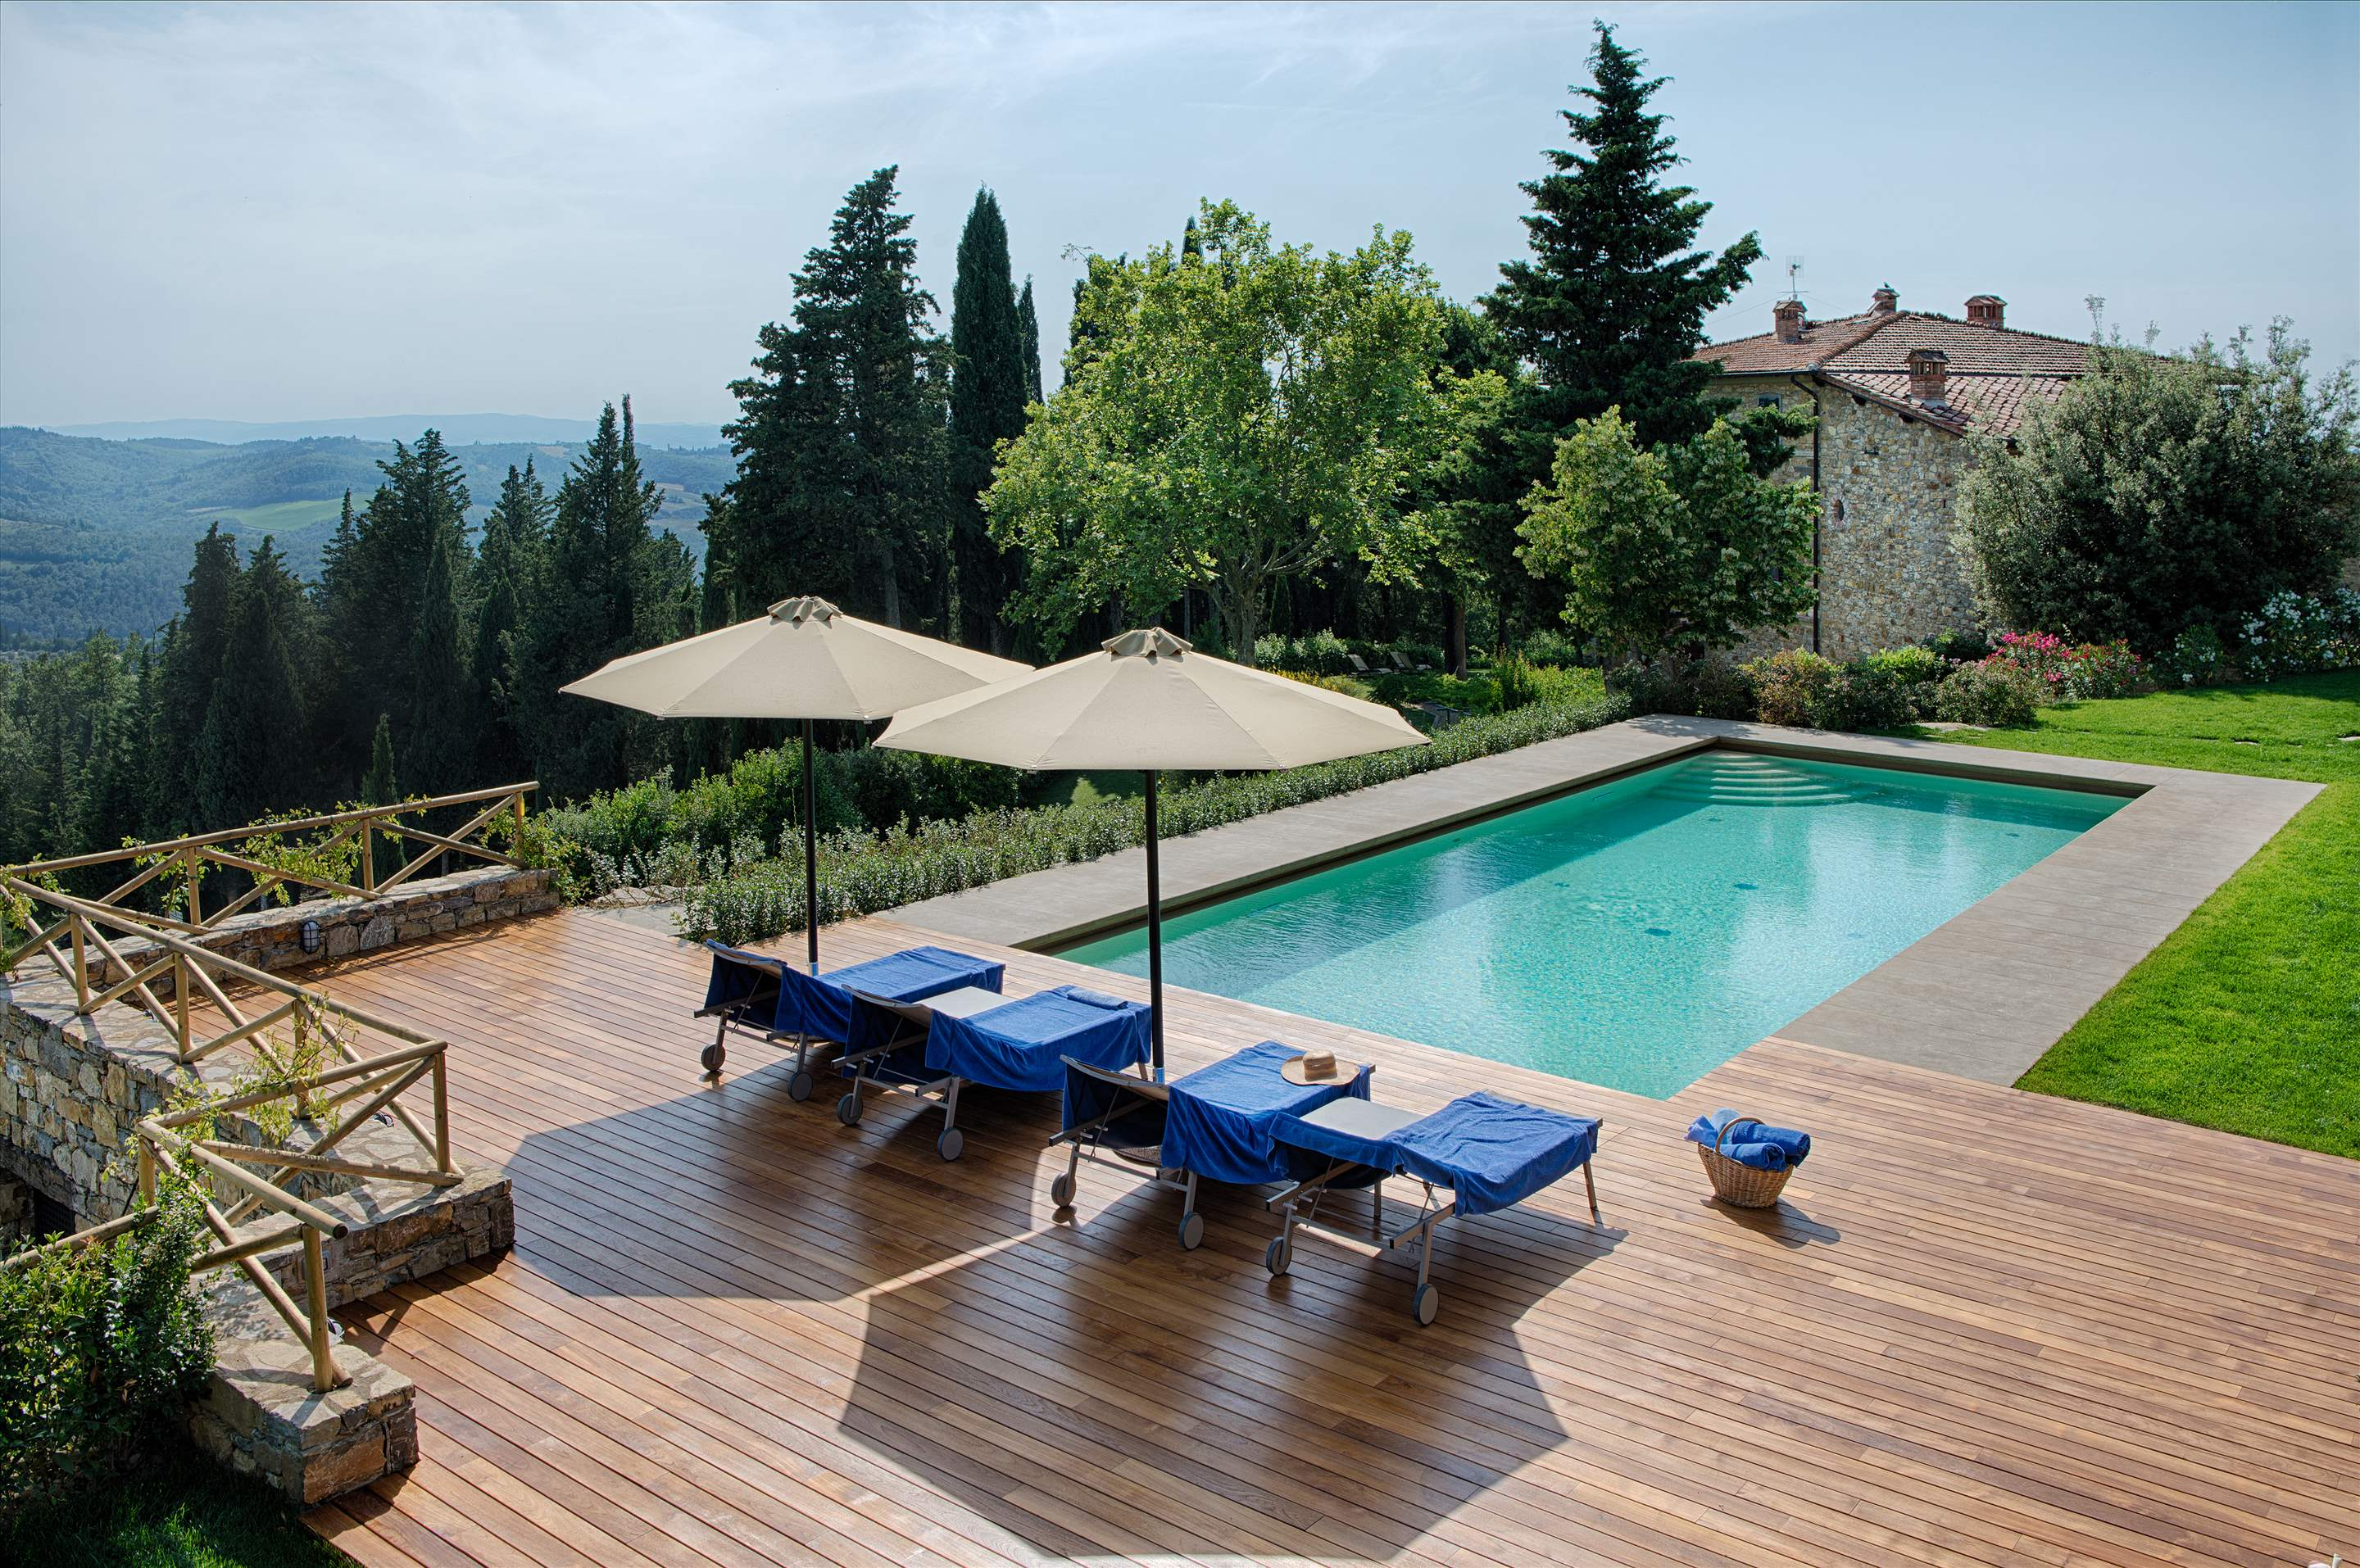 Villa La Valetta, 1 Bed Apt Rosa, 1 bedroom villa in Chianti & Countryside, Tuscany Photo #1